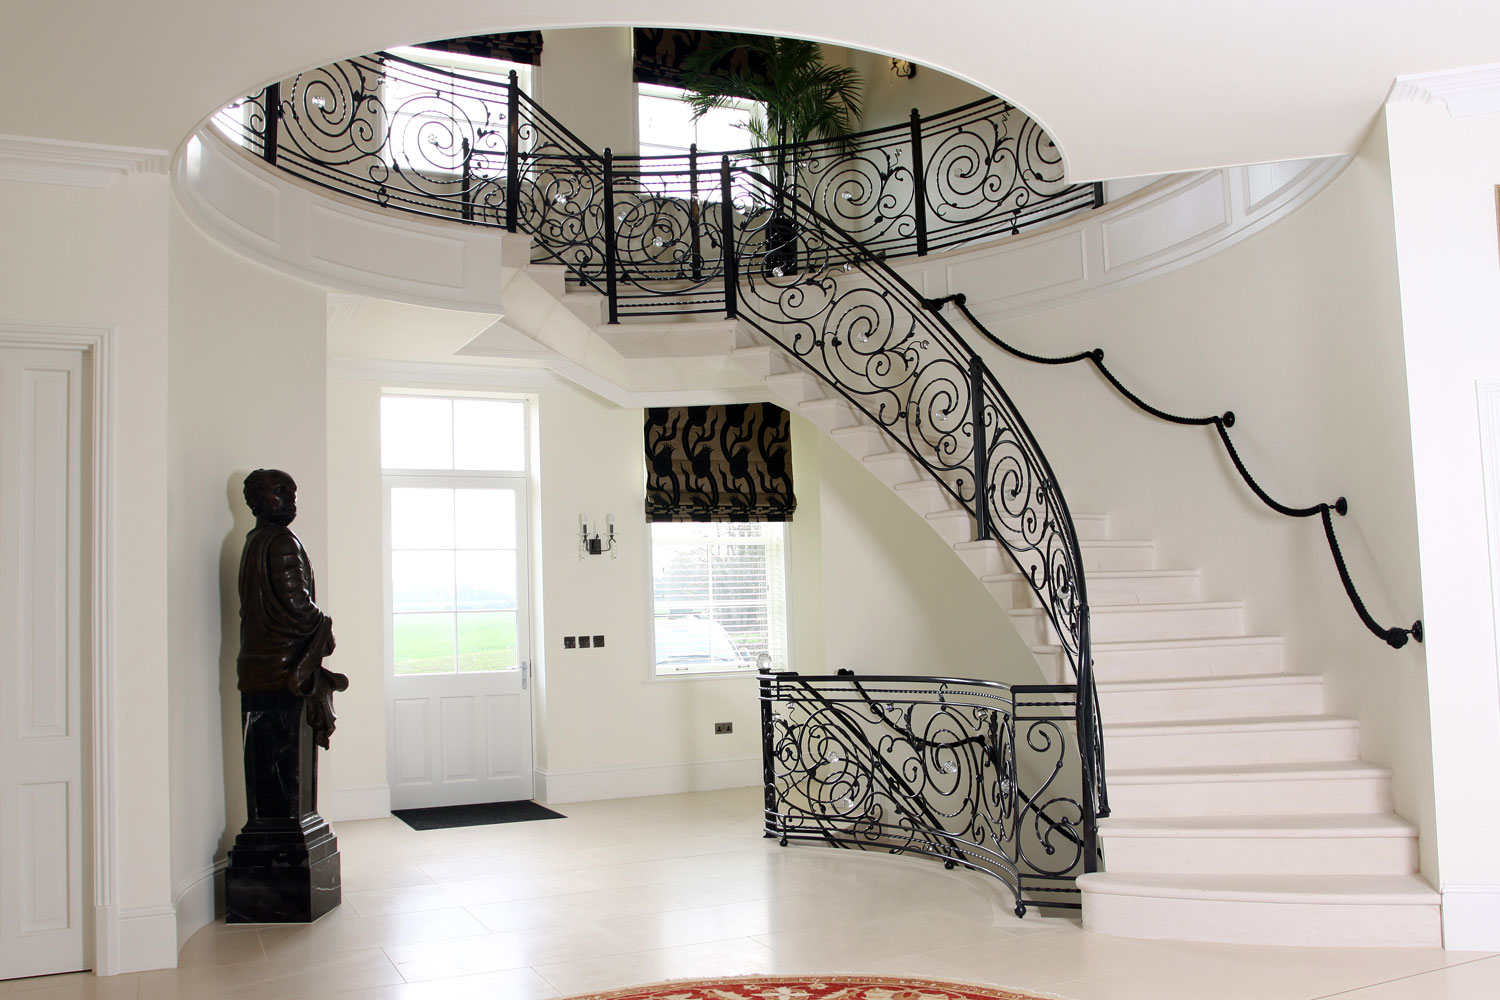 3. Moleanos stone cantilever staircase with solid stone in-flight landing – West Sussex